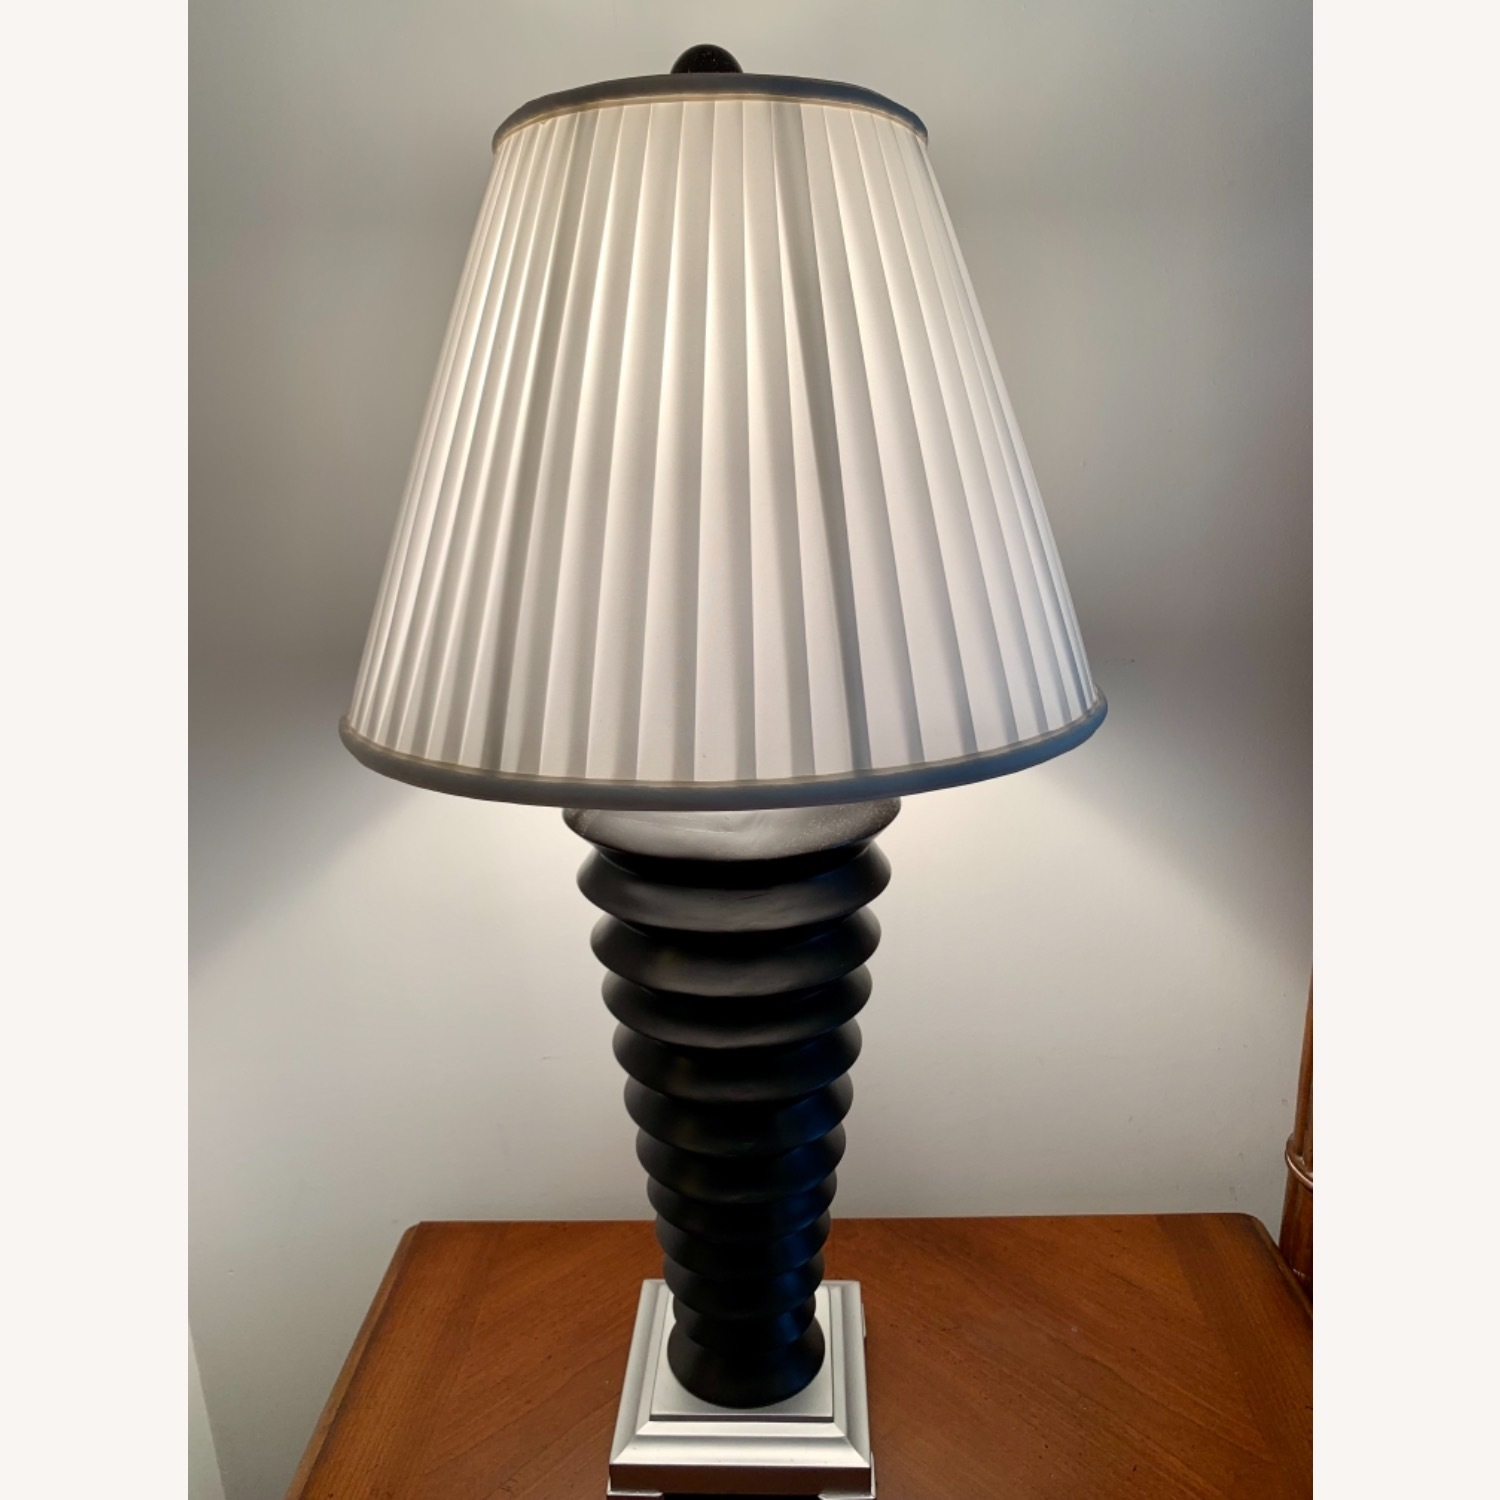 Black and White Nightstand Lamps - image-1